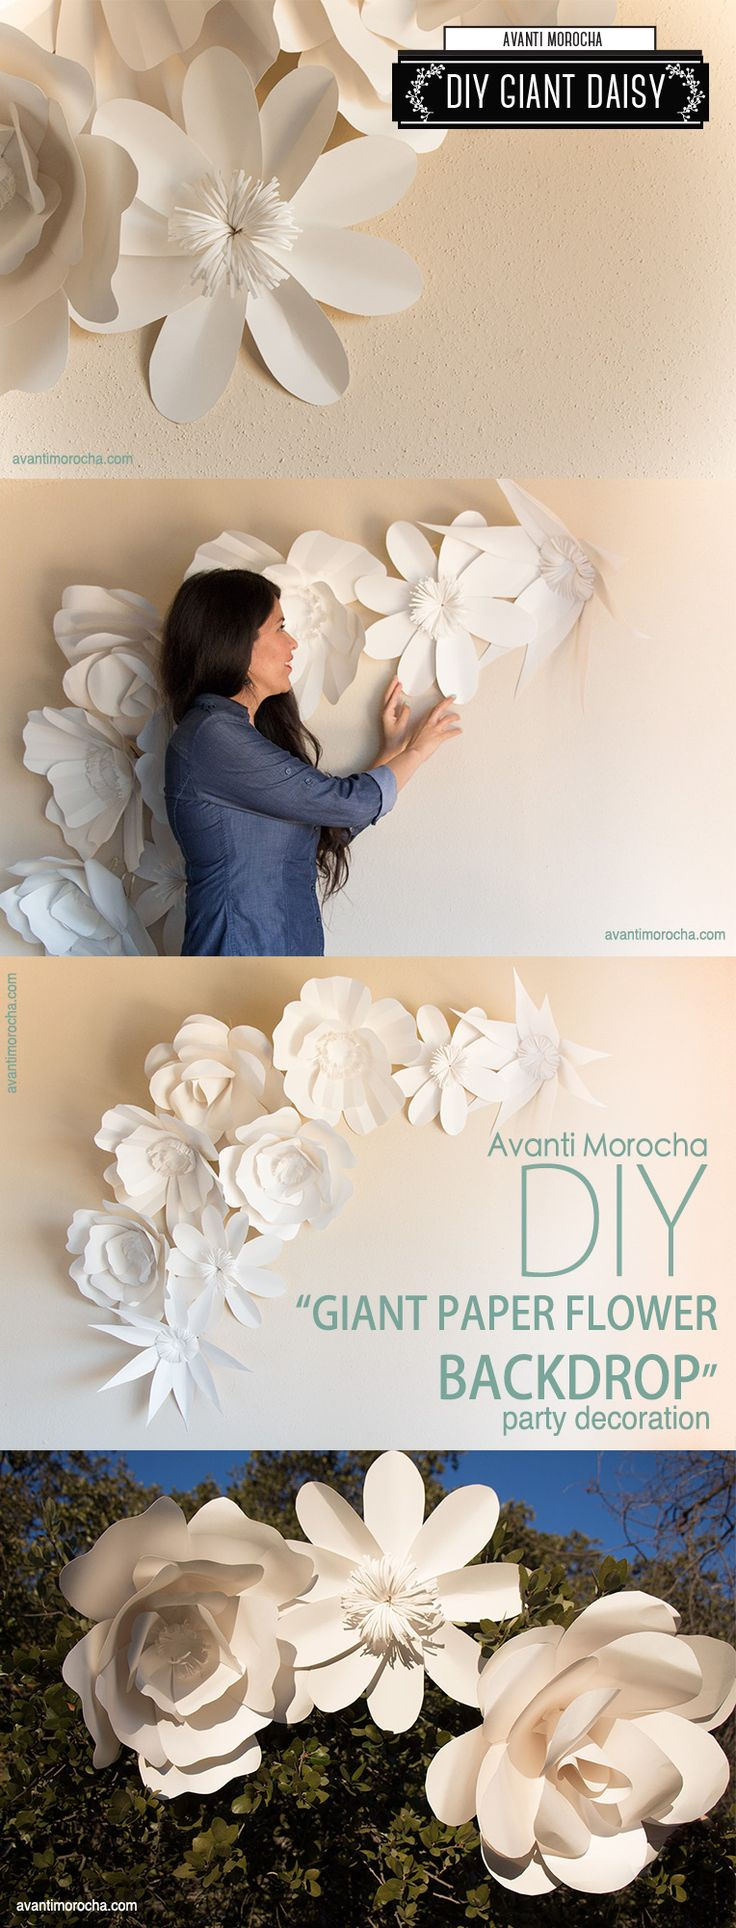 diy giant paper flower backdrop weddings event decor. Black Bedroom Furniture Sets. Home Design Ideas